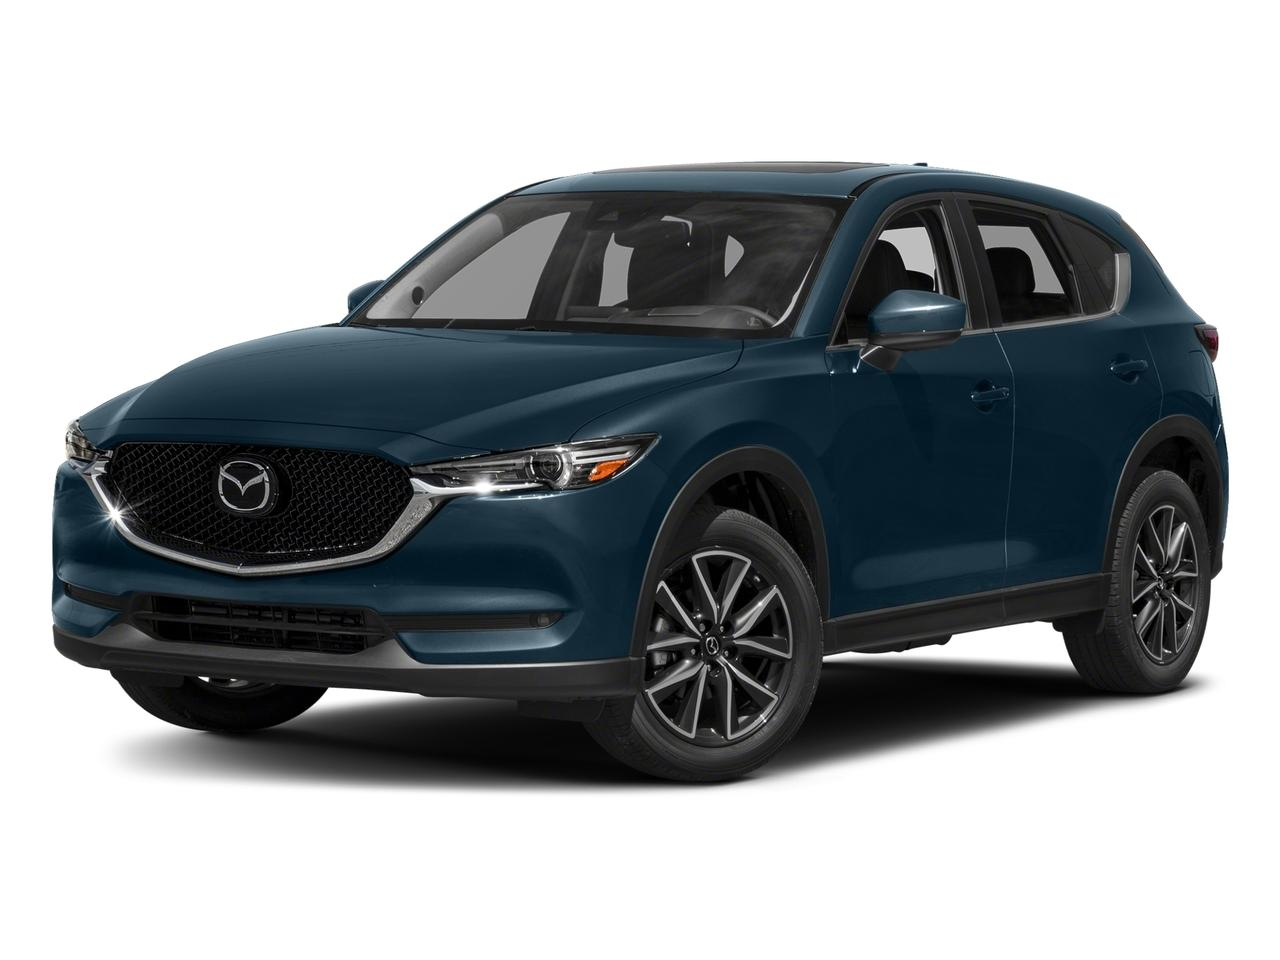 2017 Mazda CX-5 Vehicle Photo in Rockville, MD 20852